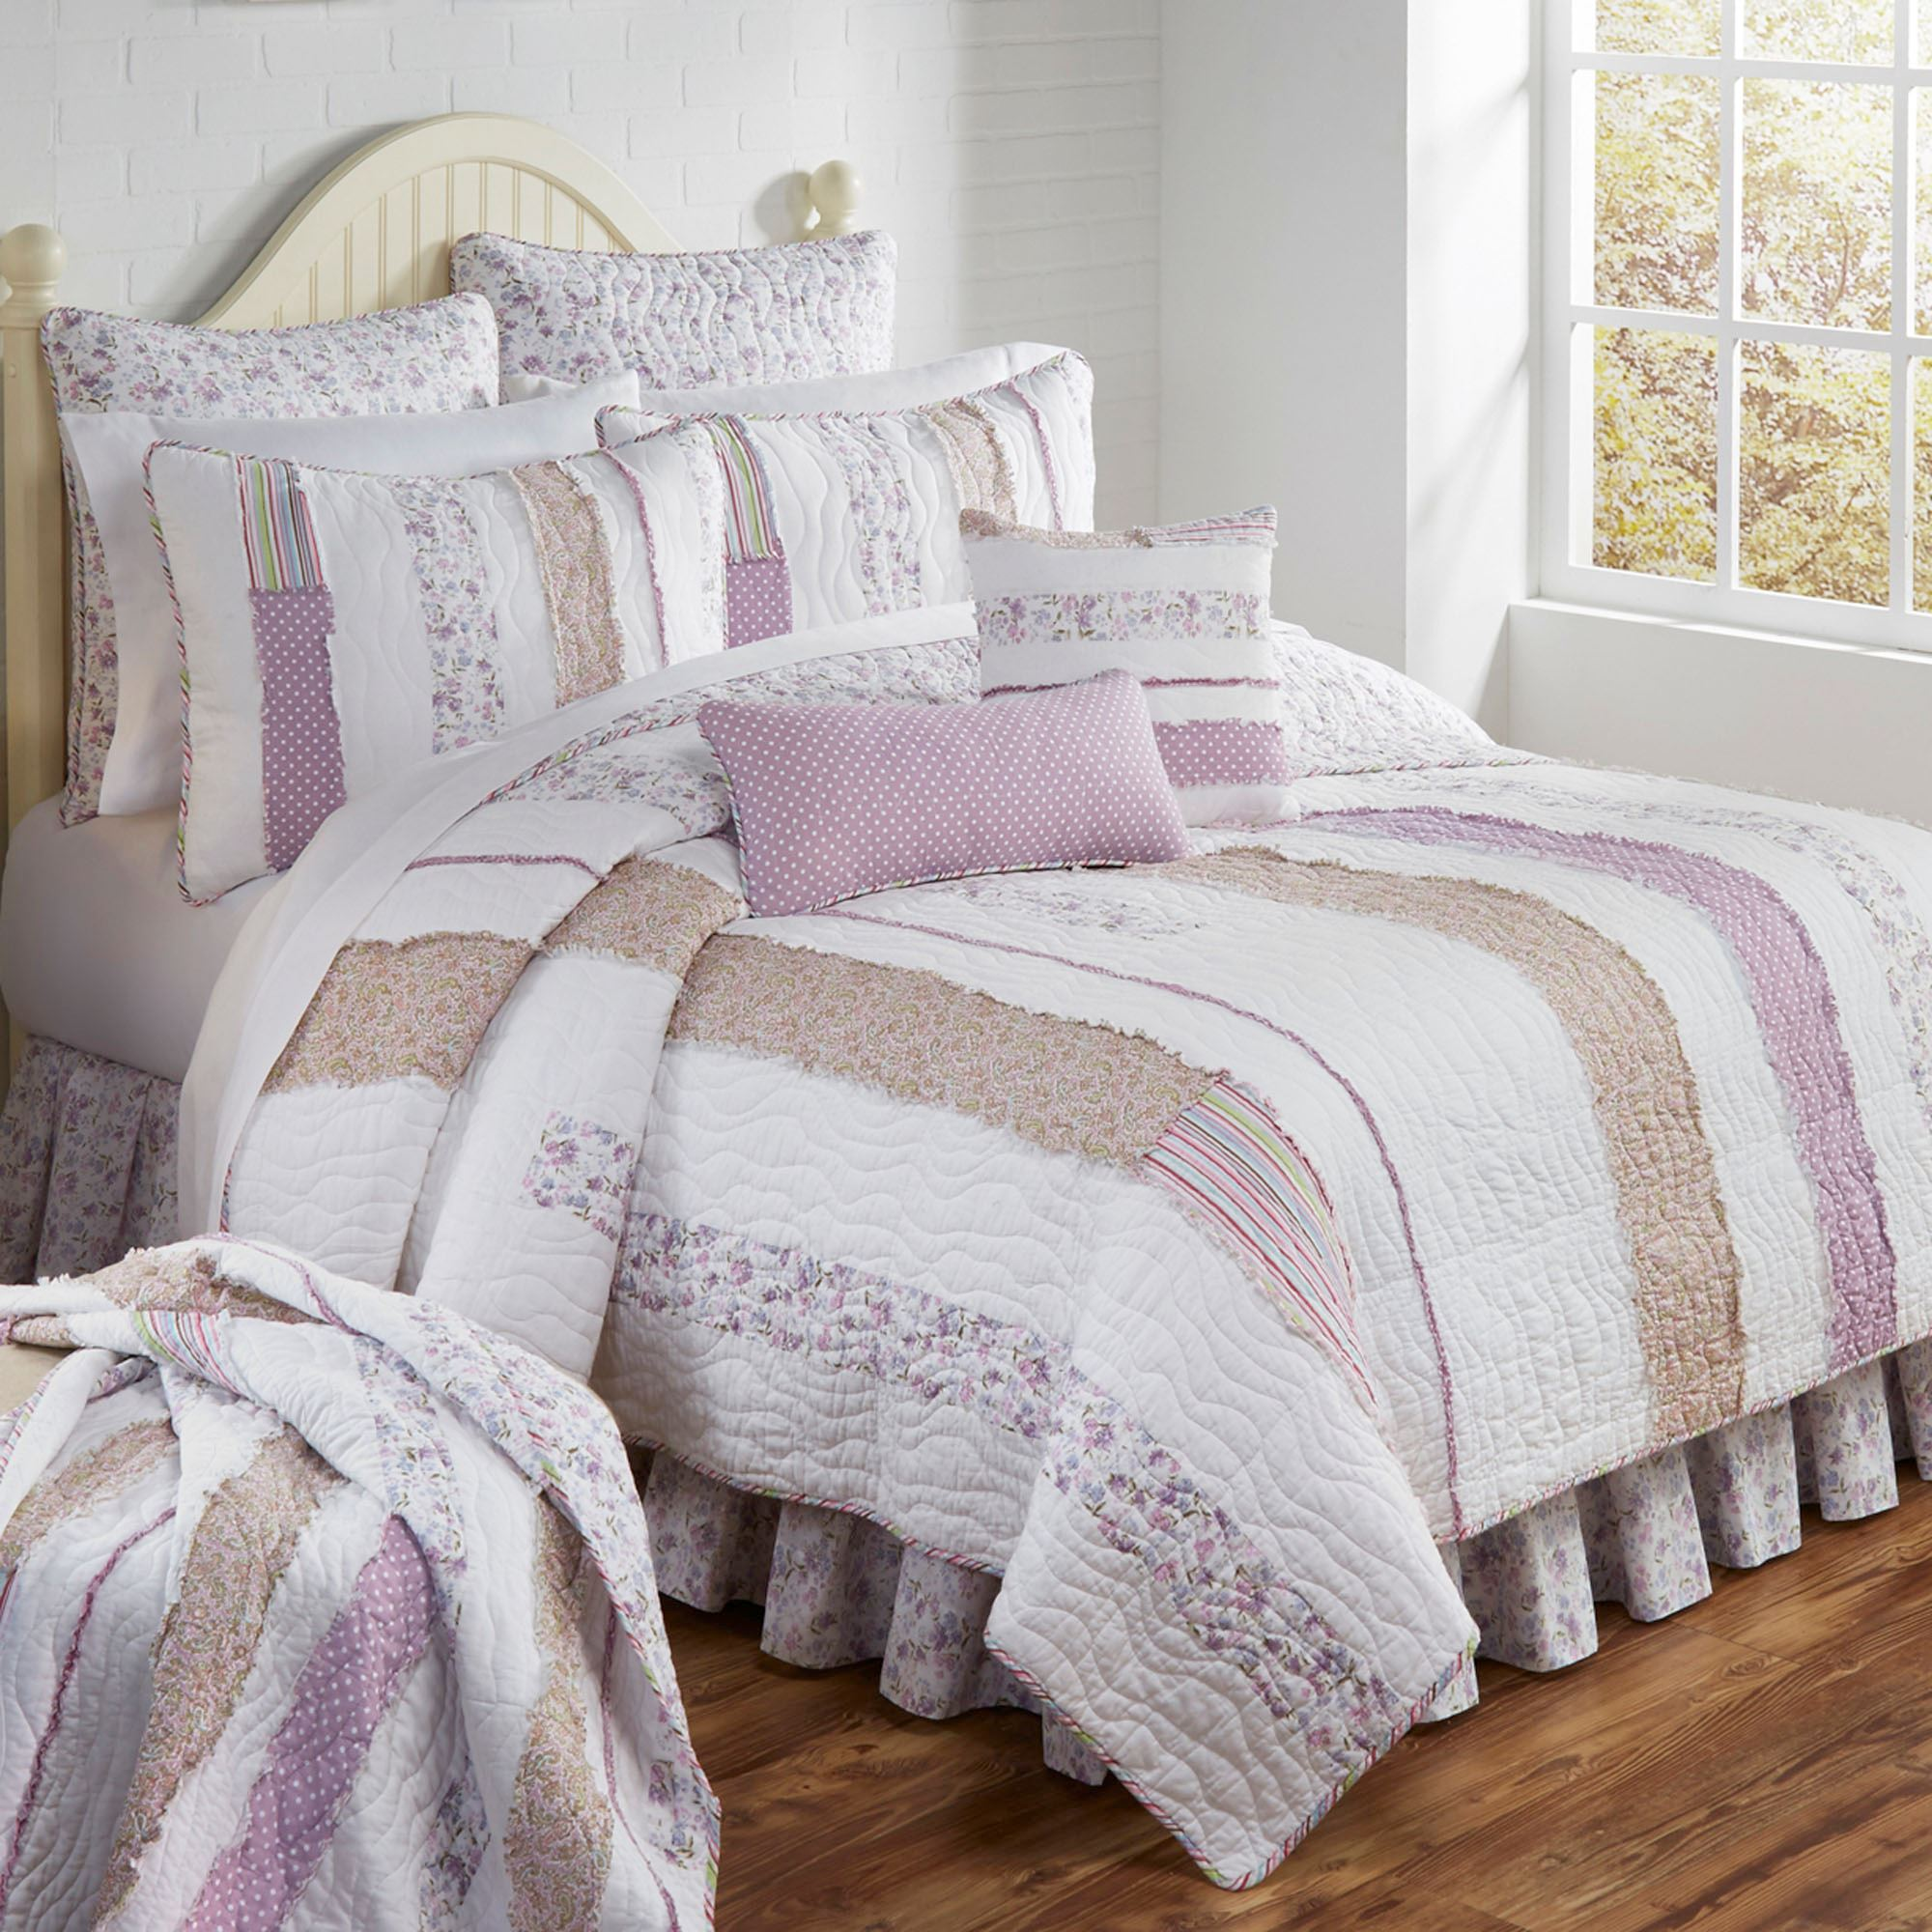 Lavender Rail Quilt Bedding By Donna Sharp